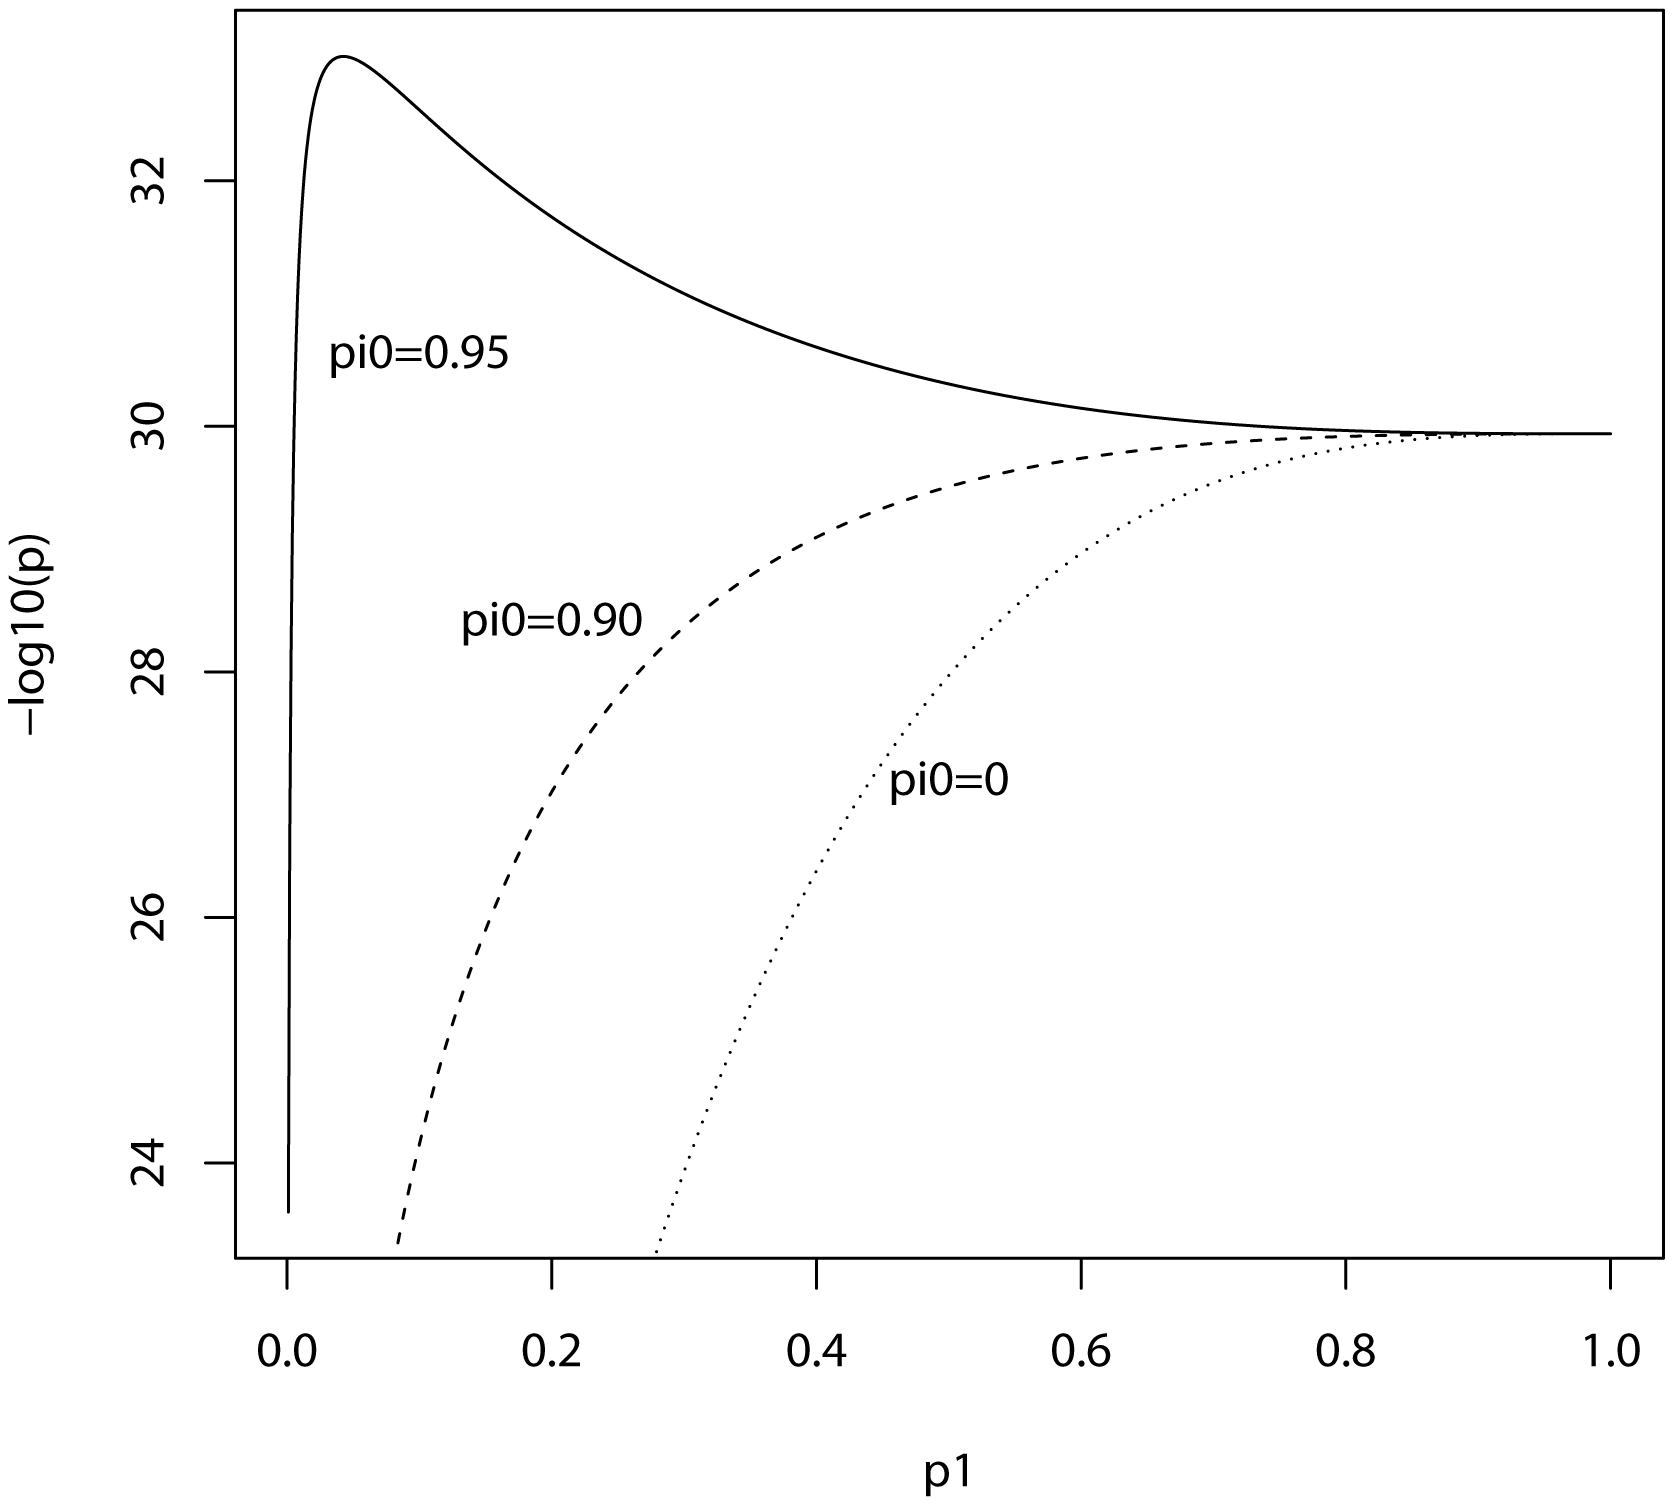 Expected −log<sub>10</sub>(<i>P</i>) of linear regression estimate as a function of <i>P</i>-value threshold for selecting markers into the polygenic score.